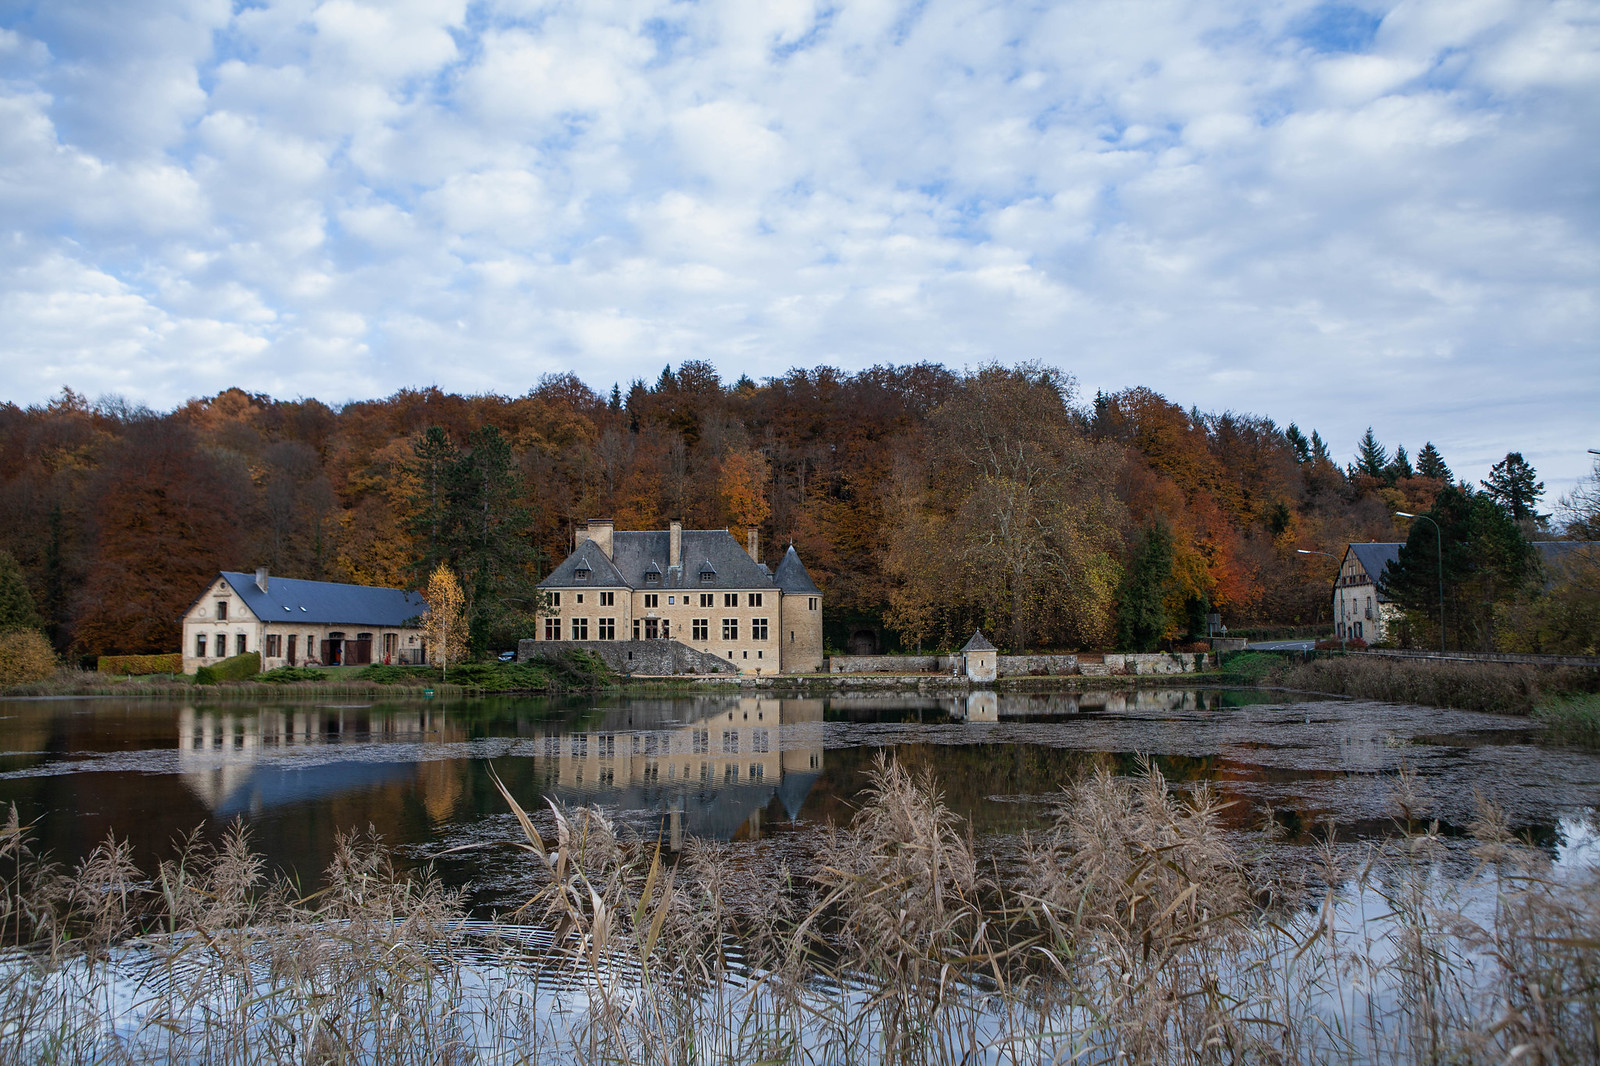 automne et reflets, Orval, Canon EOS 5D MARK II, Canon EF 24-70mm f/2.8L